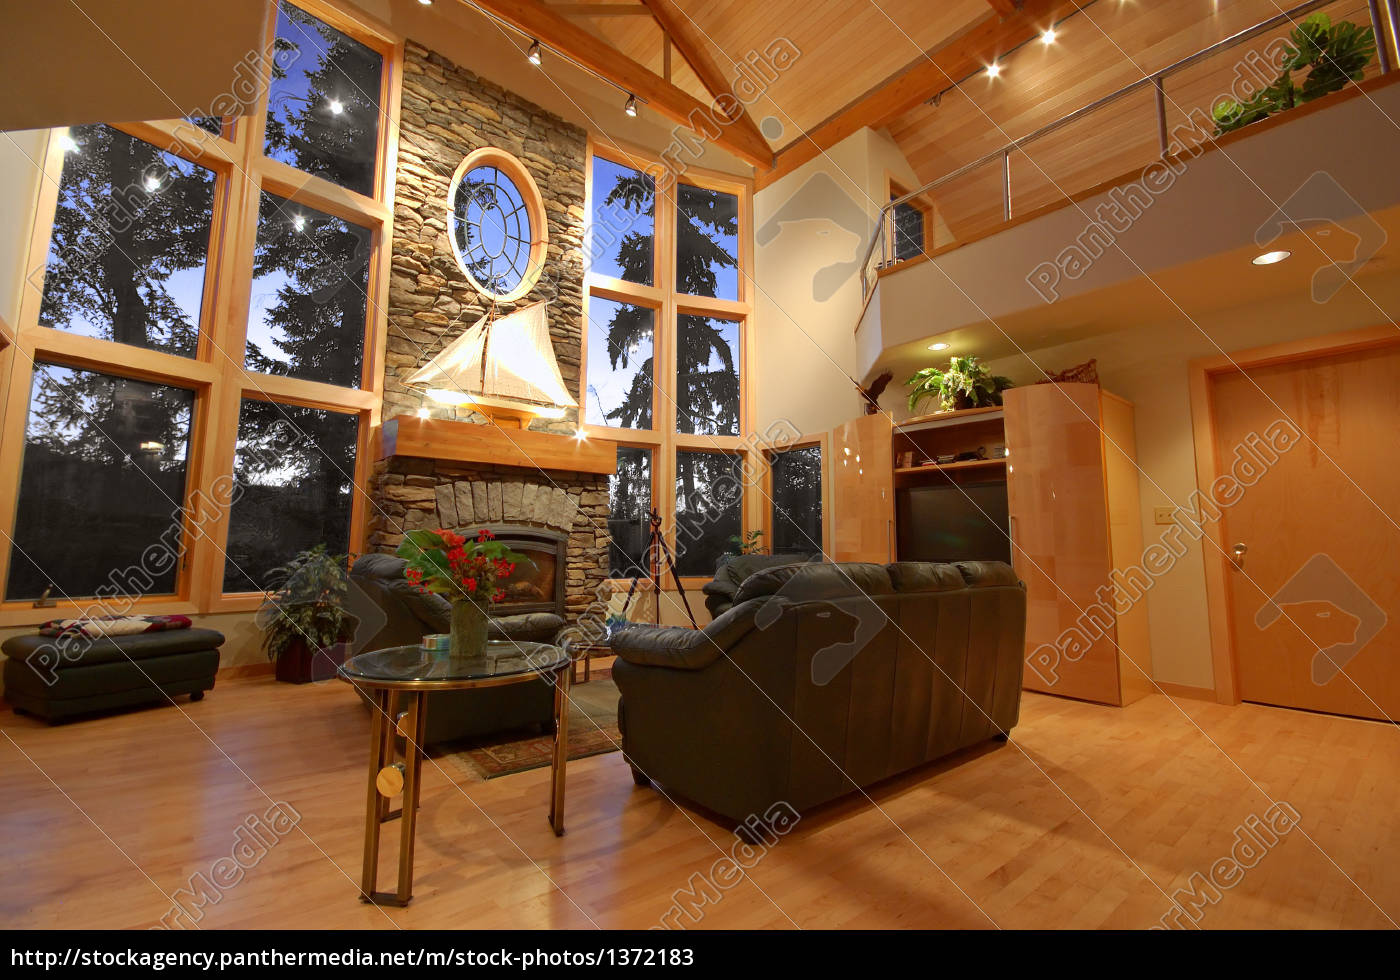 interior, of, an, upscale, house - 1372183